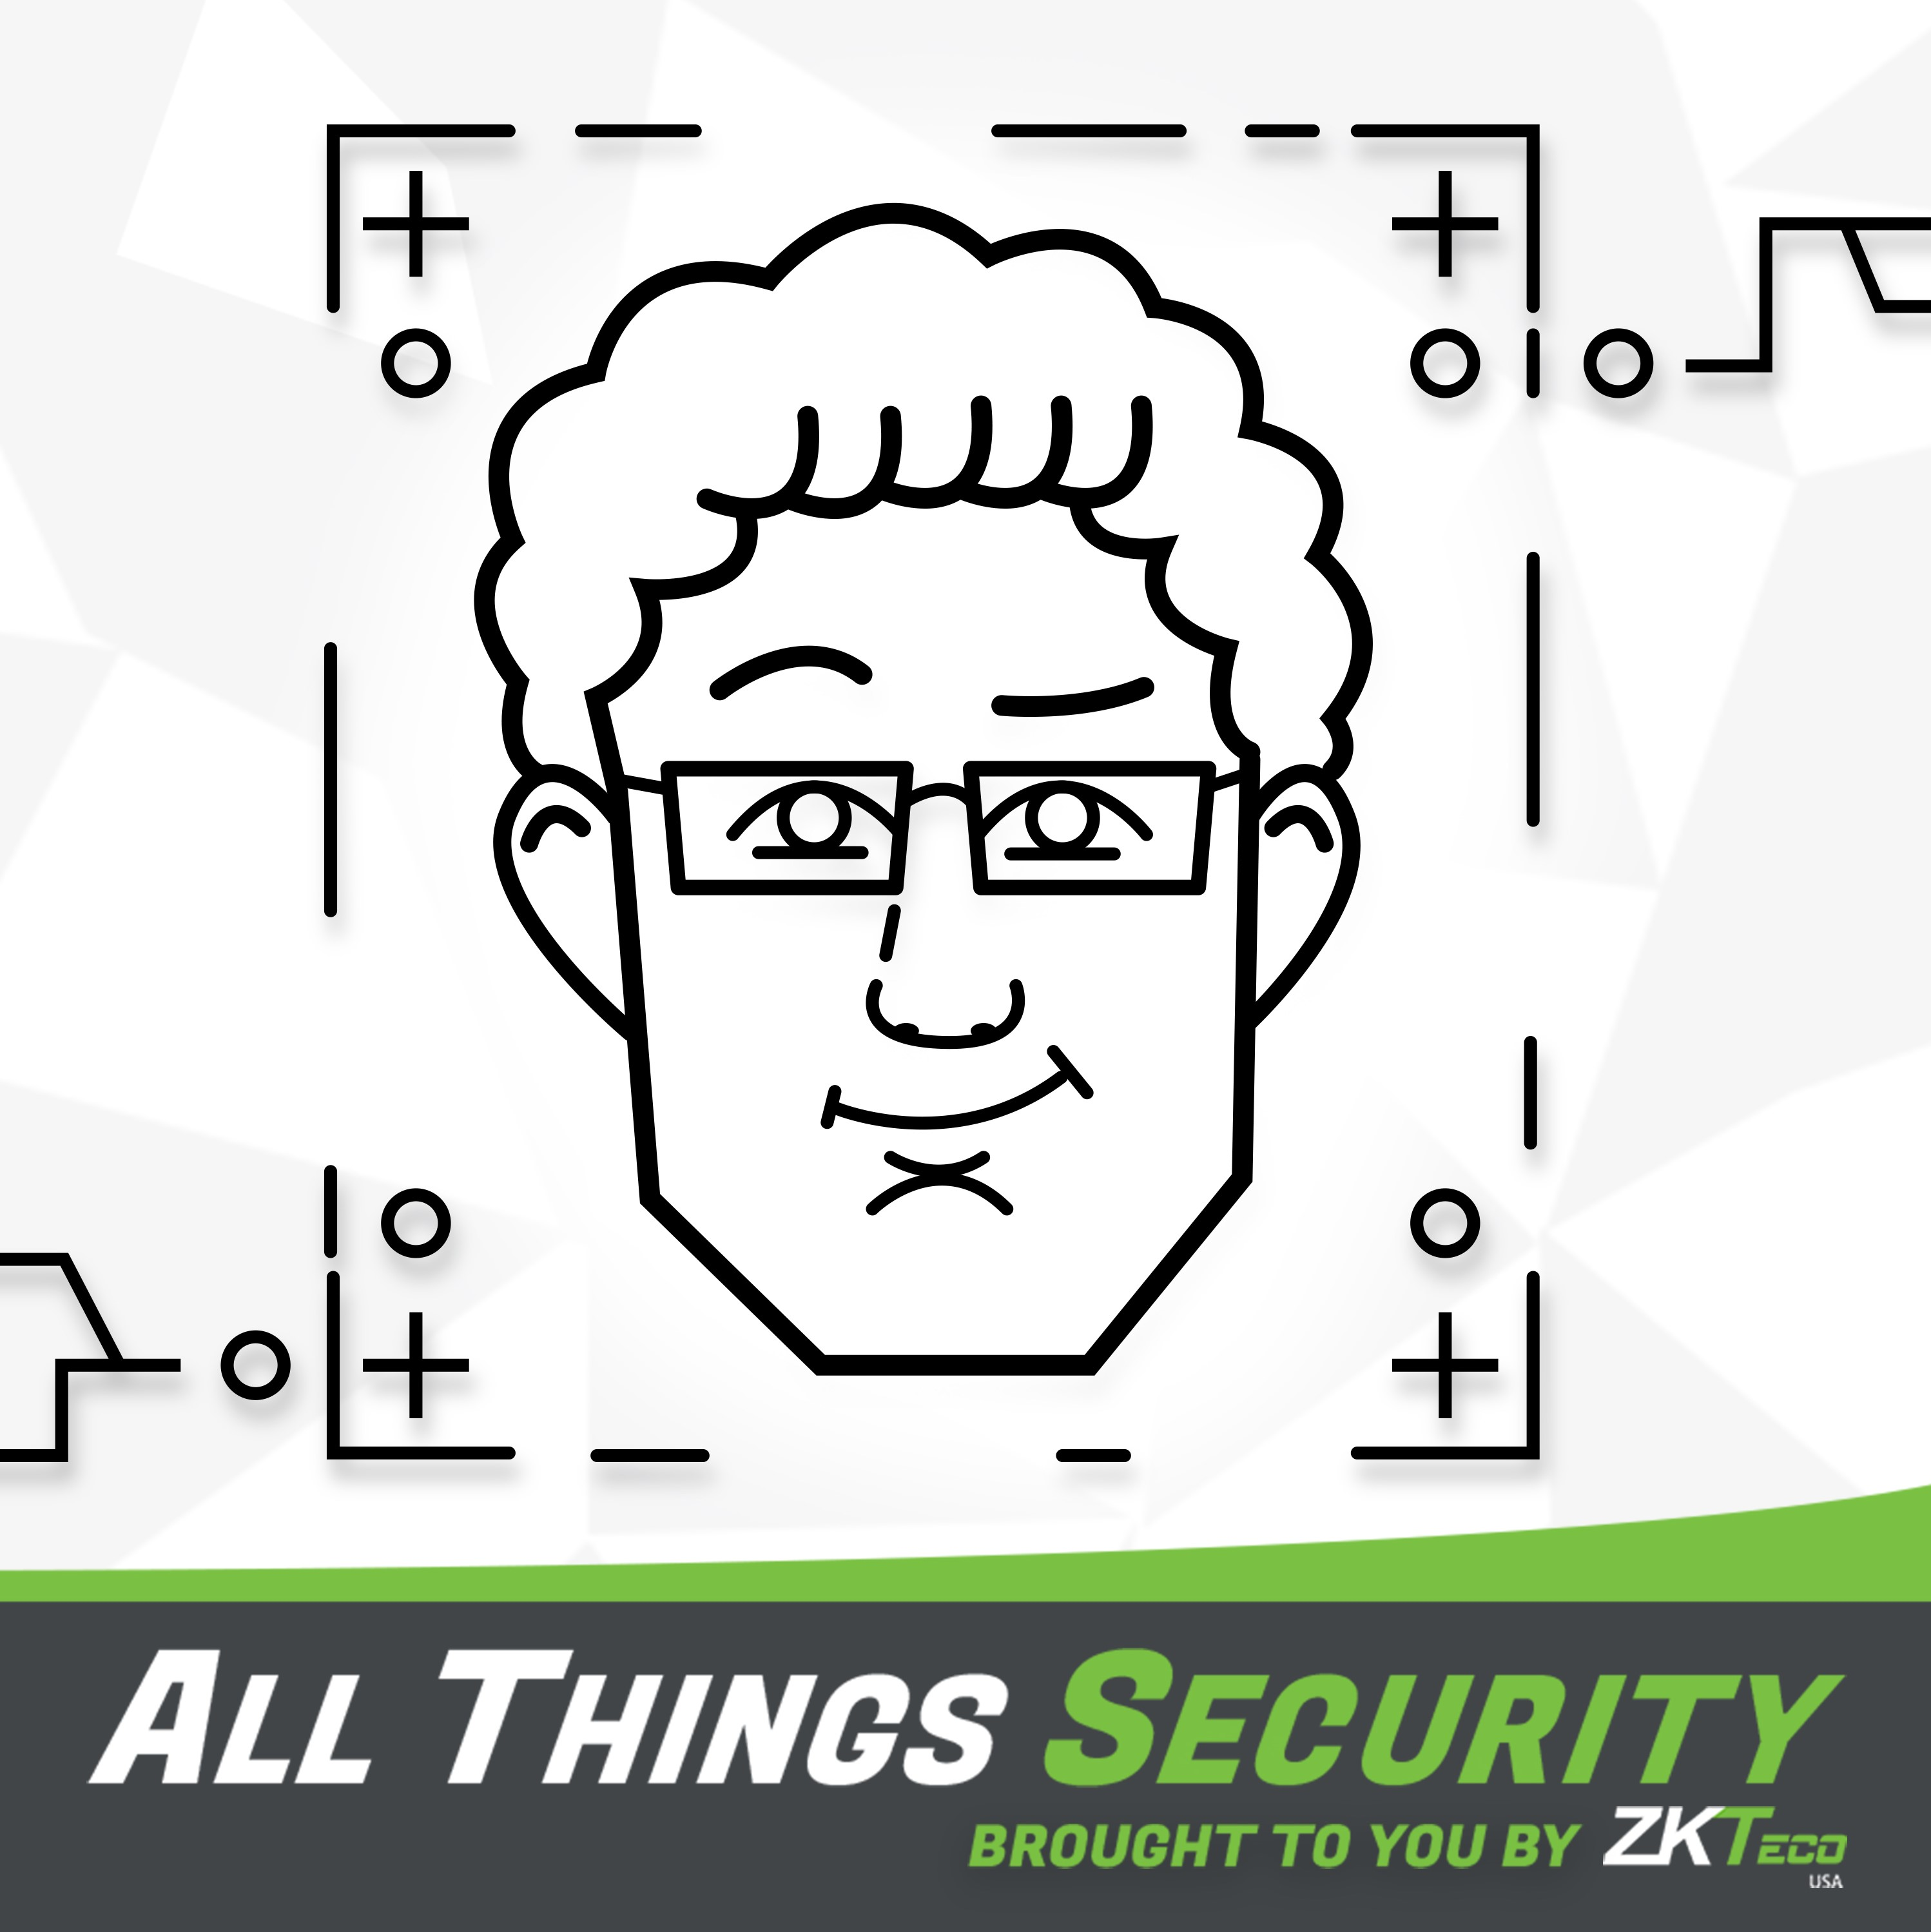 All Things Security brought to you by ZKTeco USA